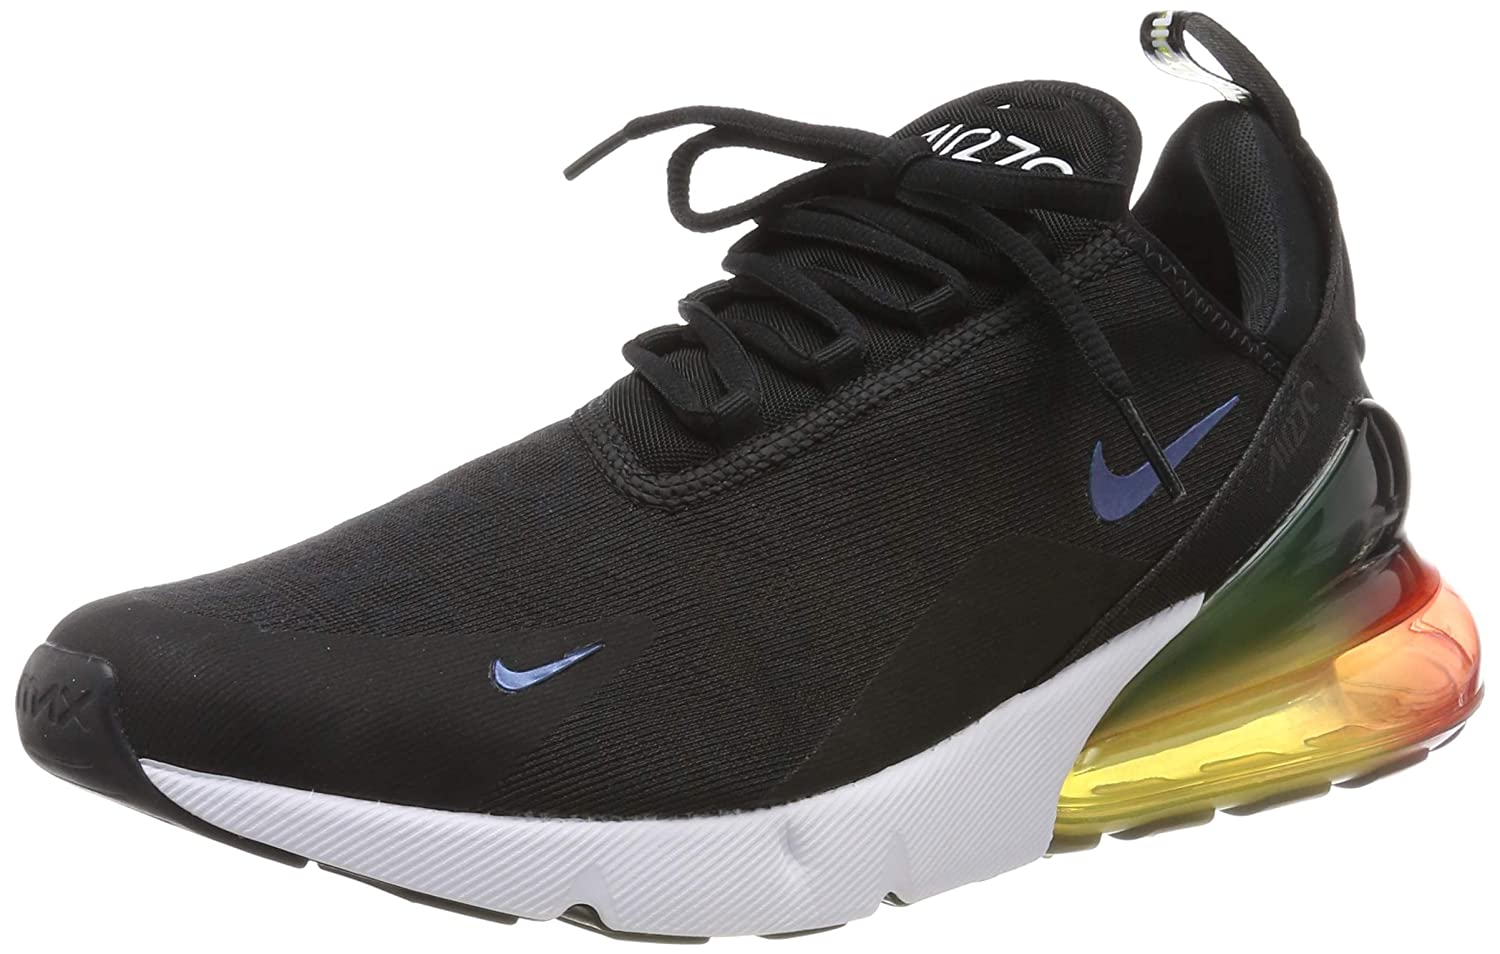 NIKE Air Max 270 SE Explosion AQ9164-100 Running Shoes